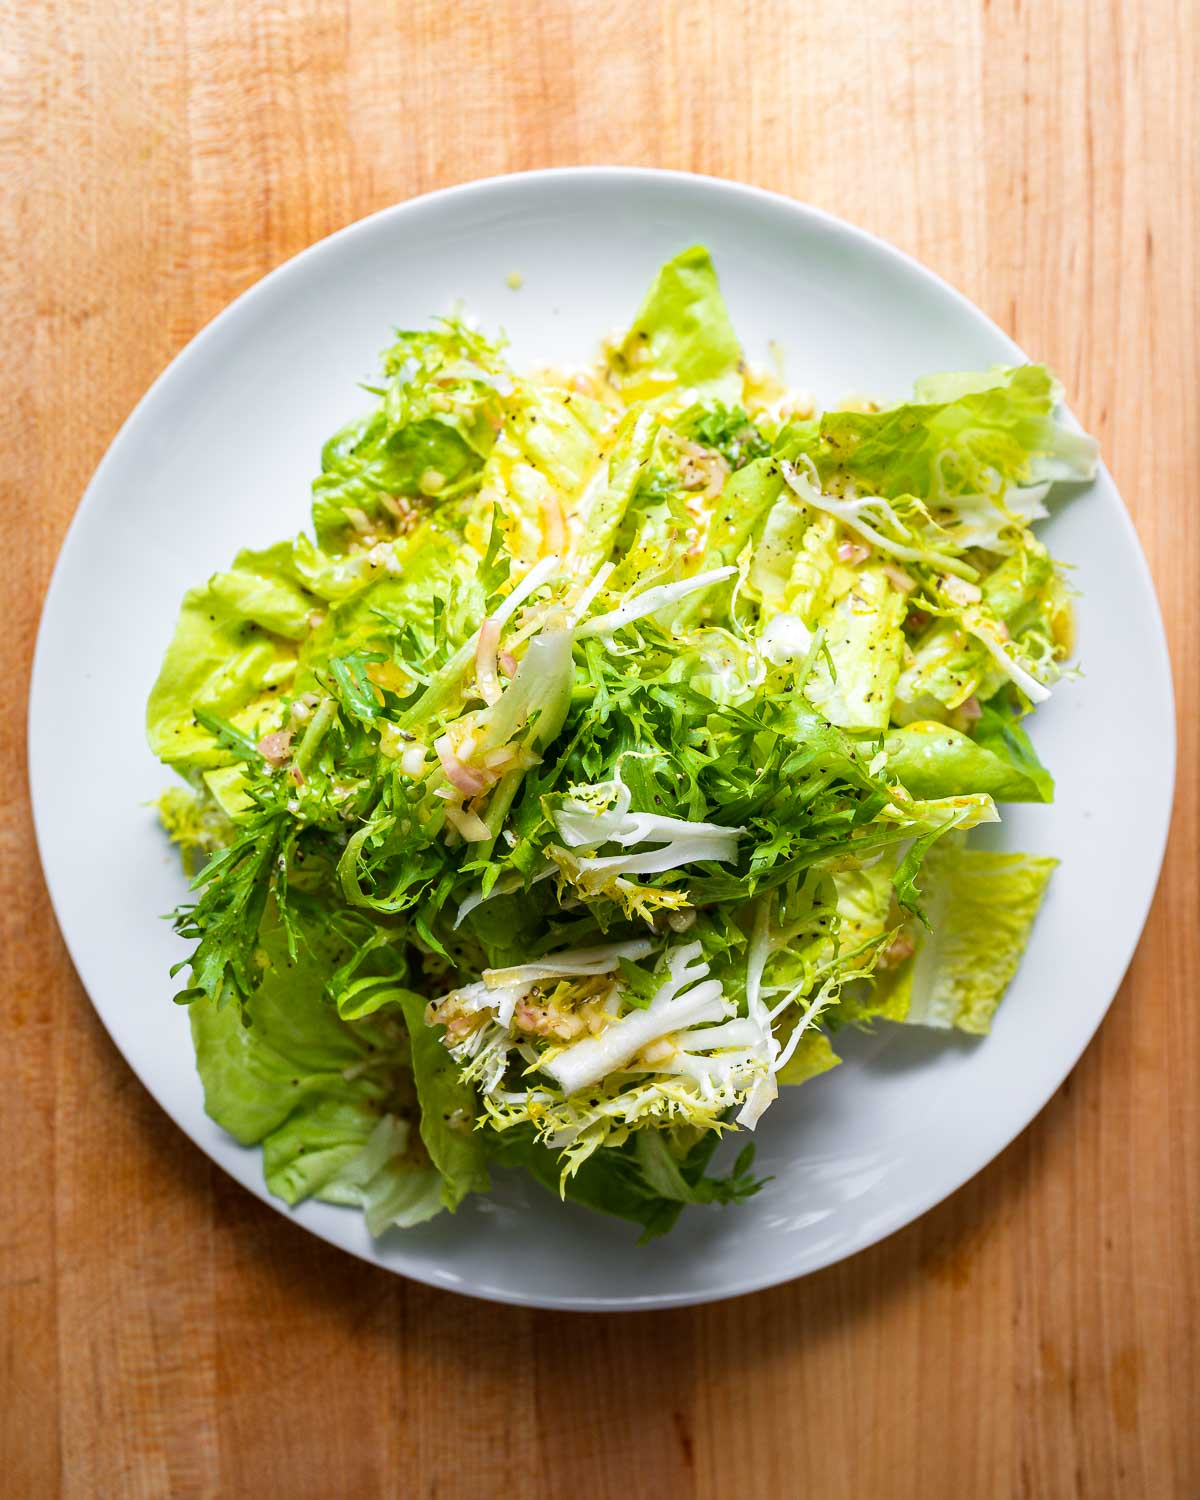 Overhead shot of white plate with 3 types of lettuce.